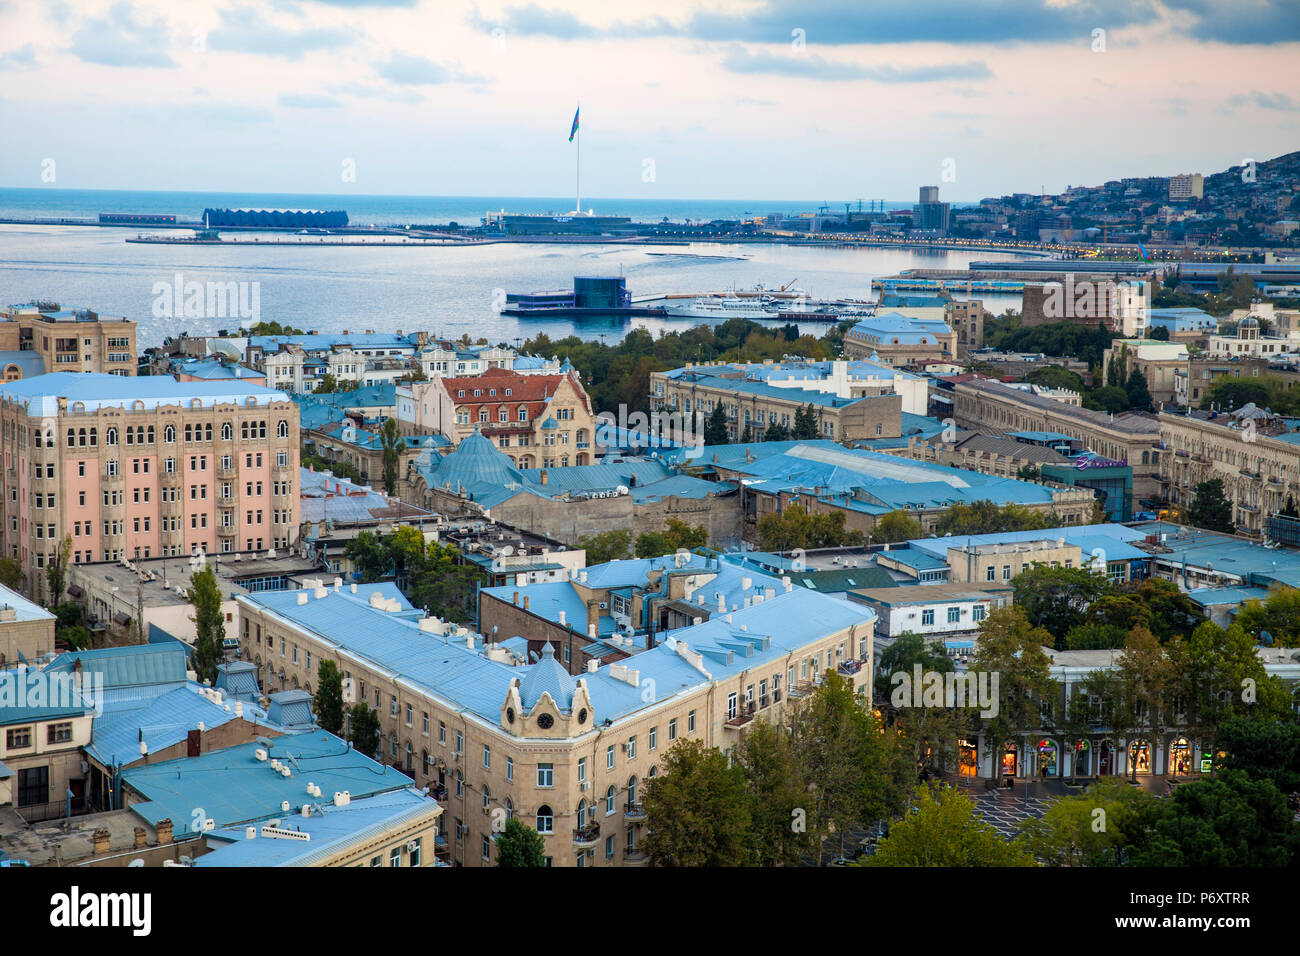 Azerbaijan, Baku, View of city looking over Fountain Square to Baku Crystal Hall, where the 2012 Eurovision Song Contest was held - and the World's second Tallest Flagmast Stock Photo